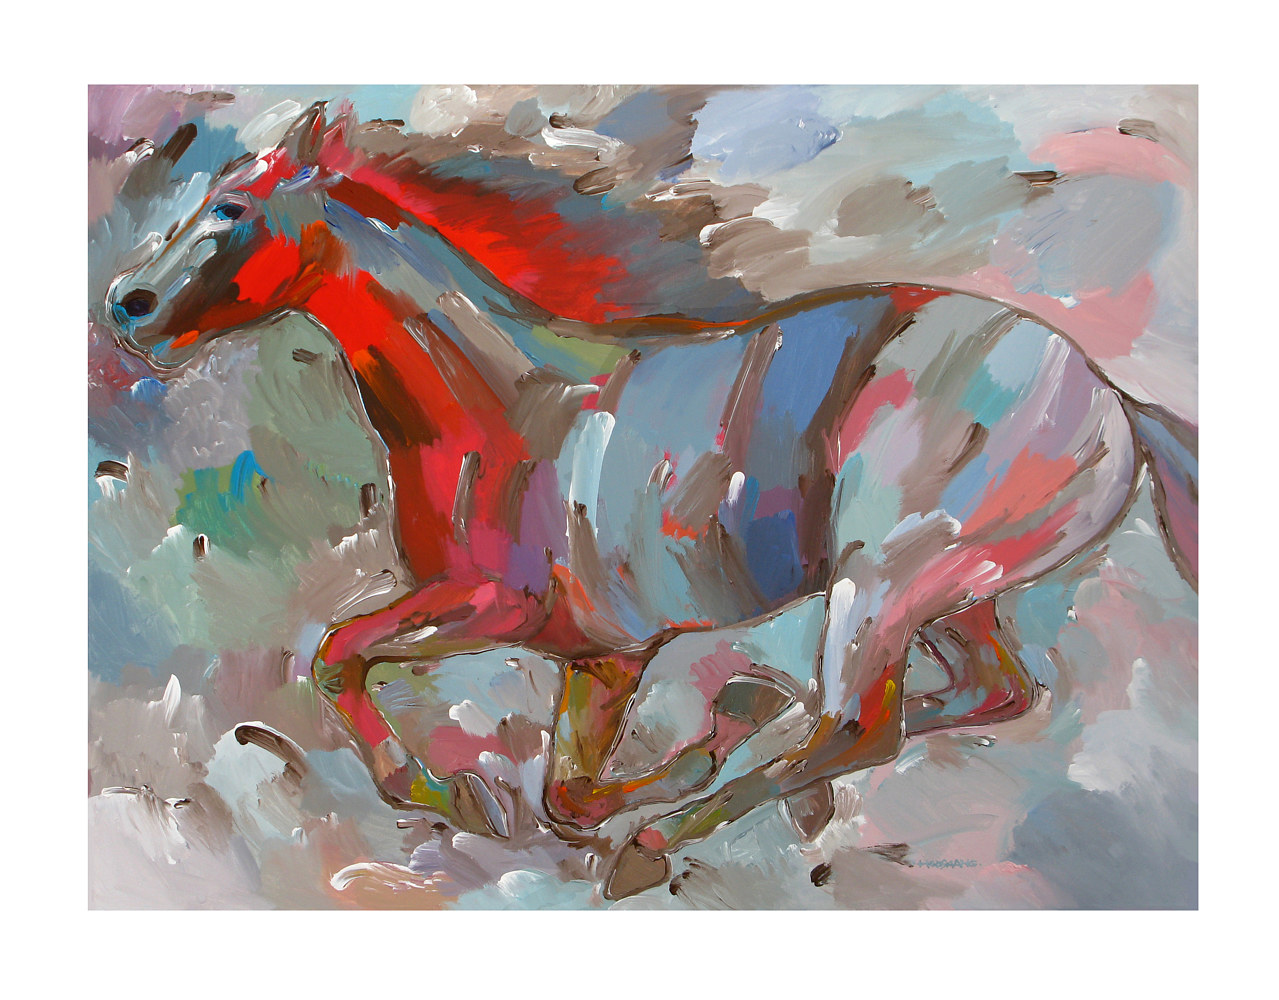 Acrylic painting Fiery Runner, 30x40 inches by Hooshang Khorasani